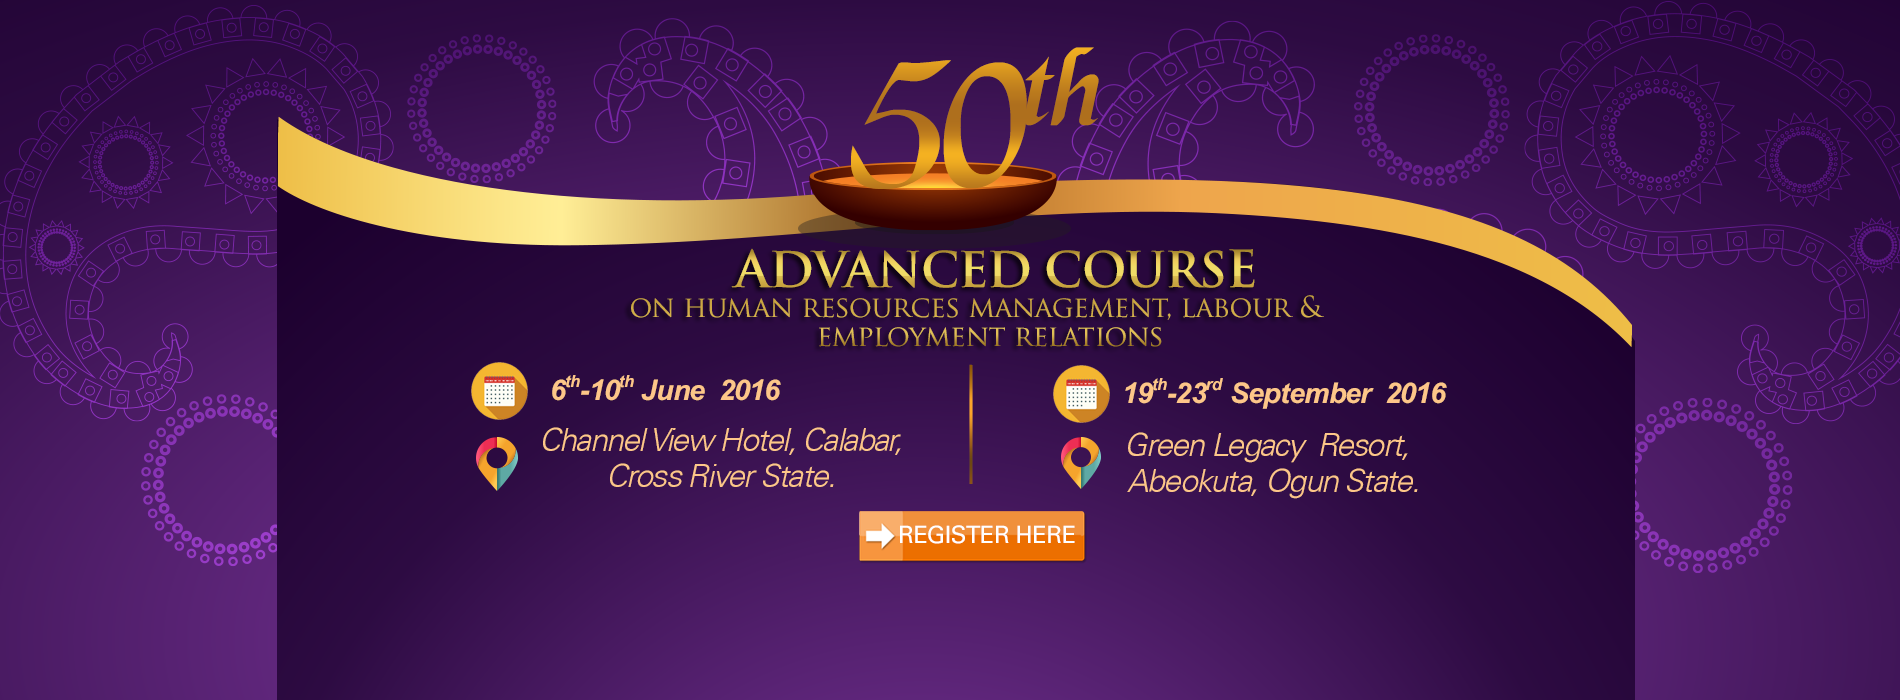 AdvancedCourse50th